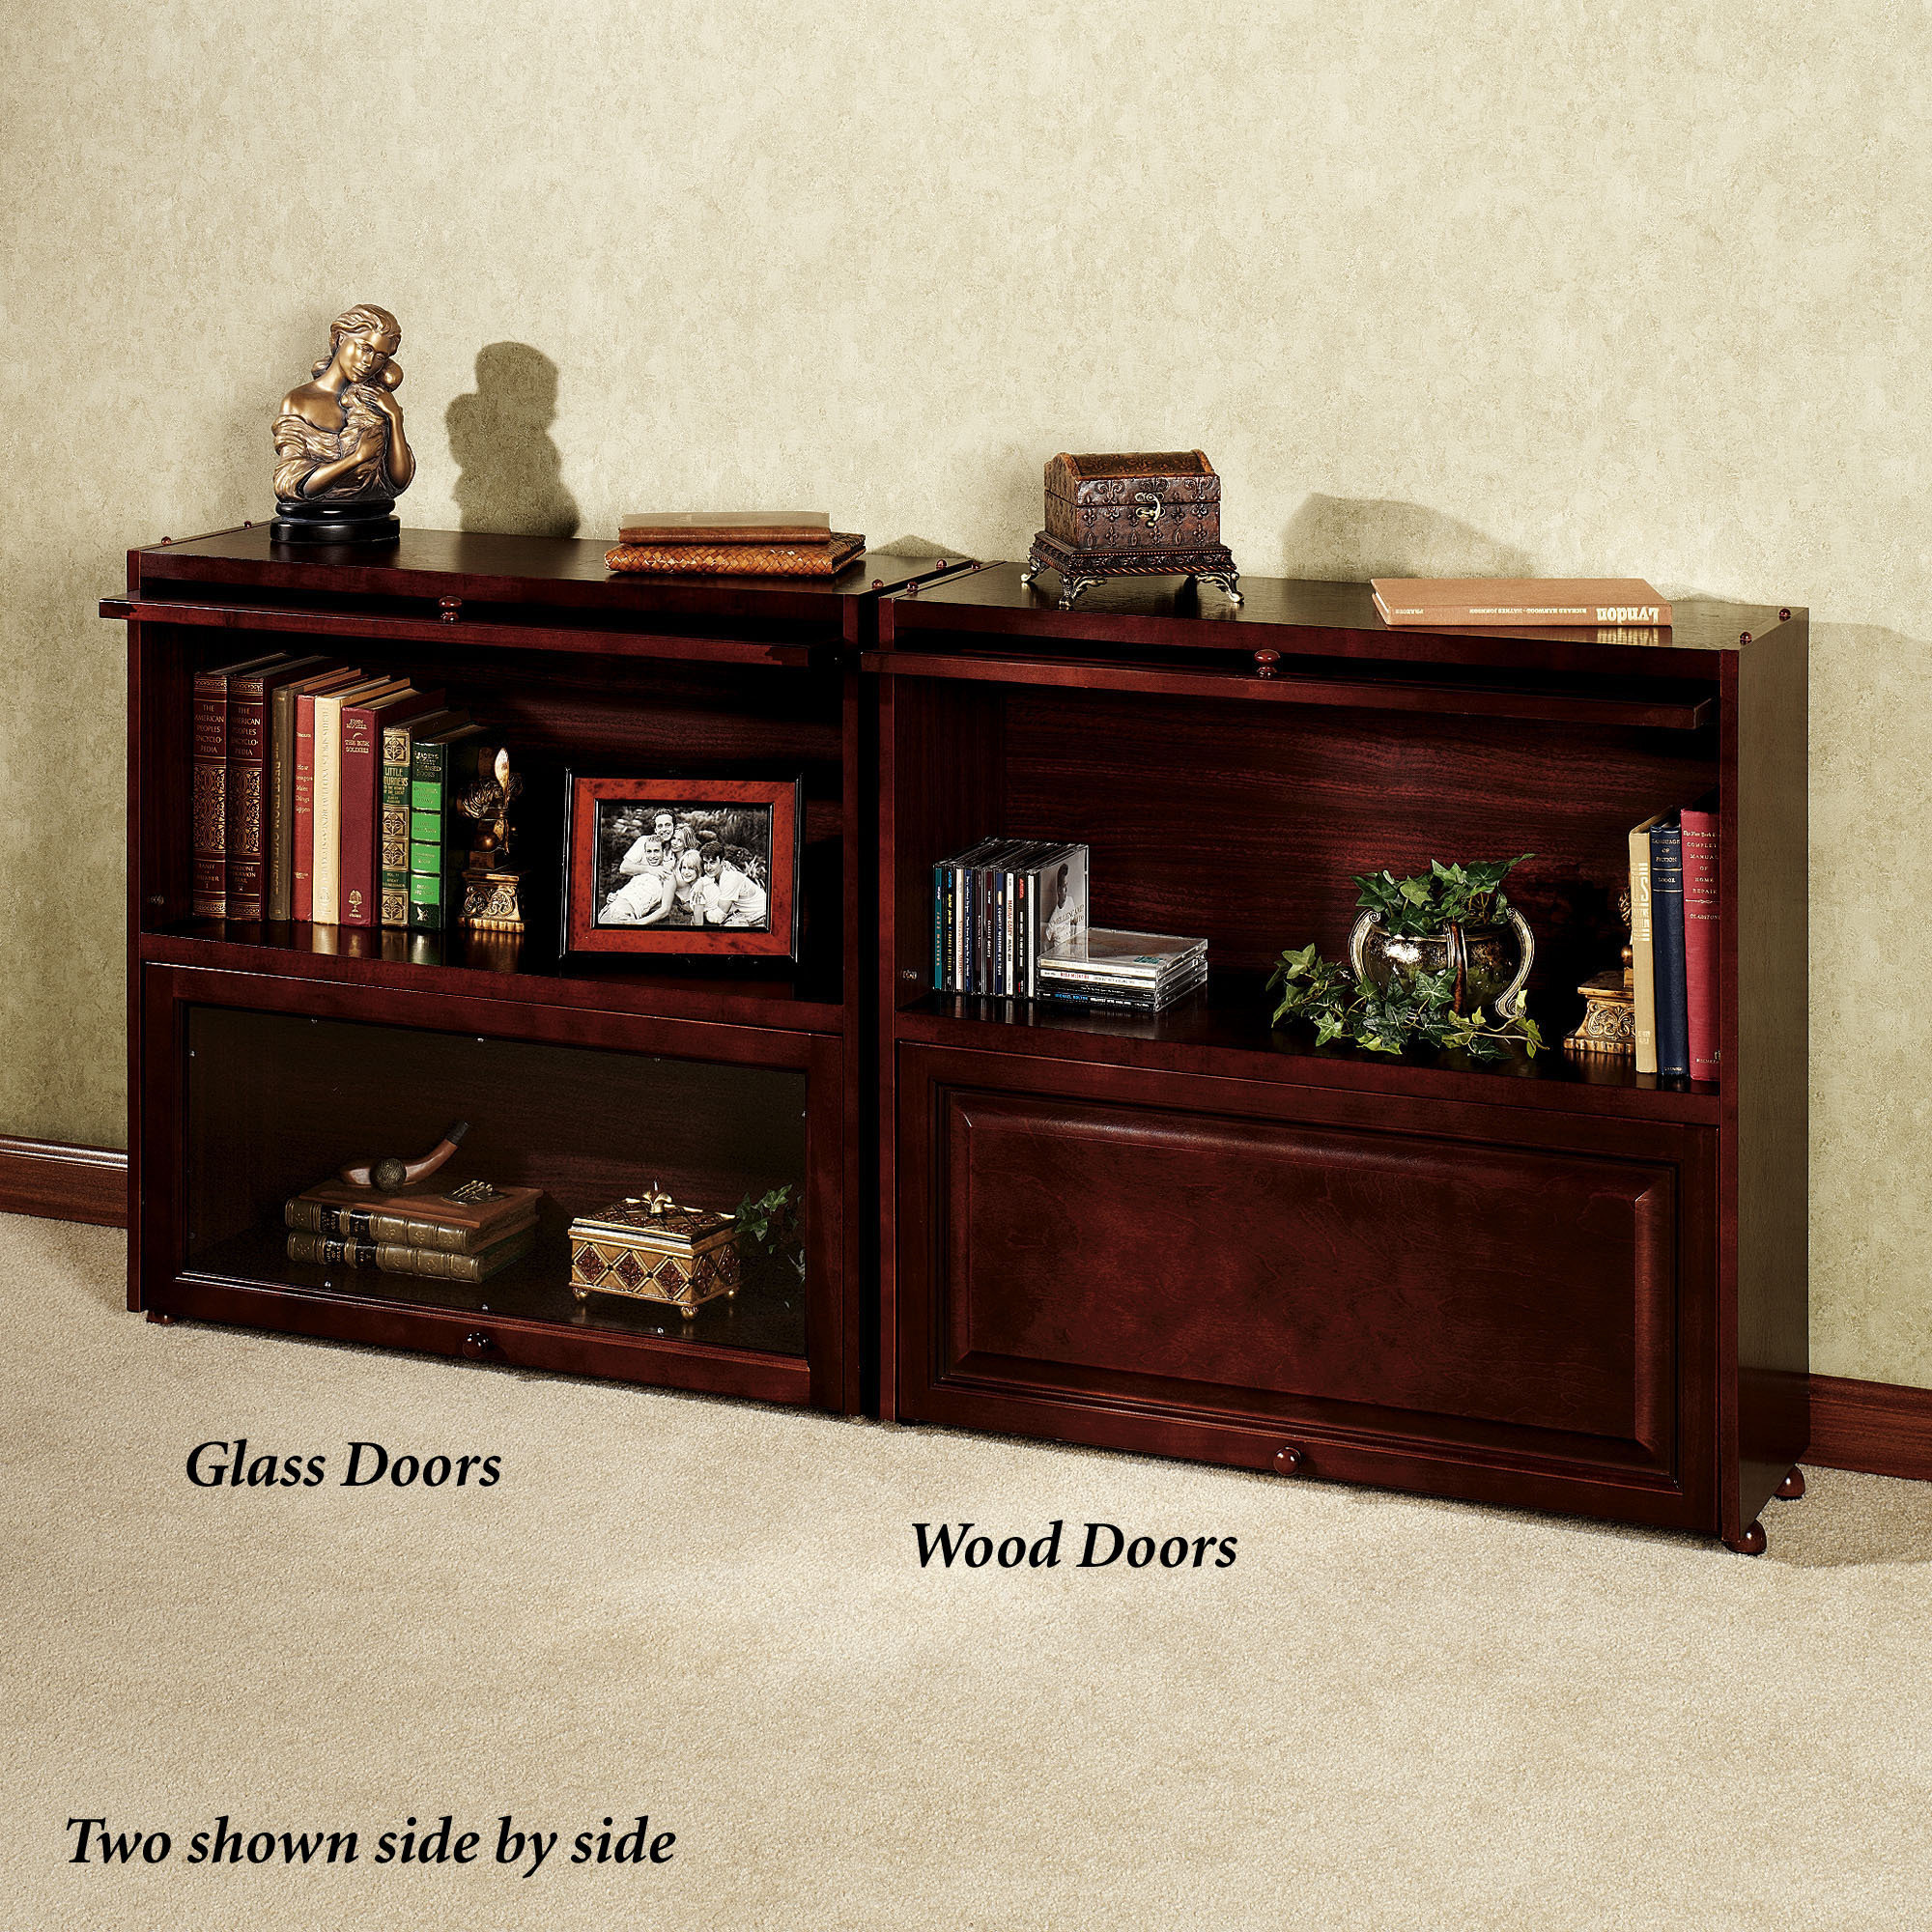 products bookcases mg barrister ltd wernicke pritchard globe bookcase drew